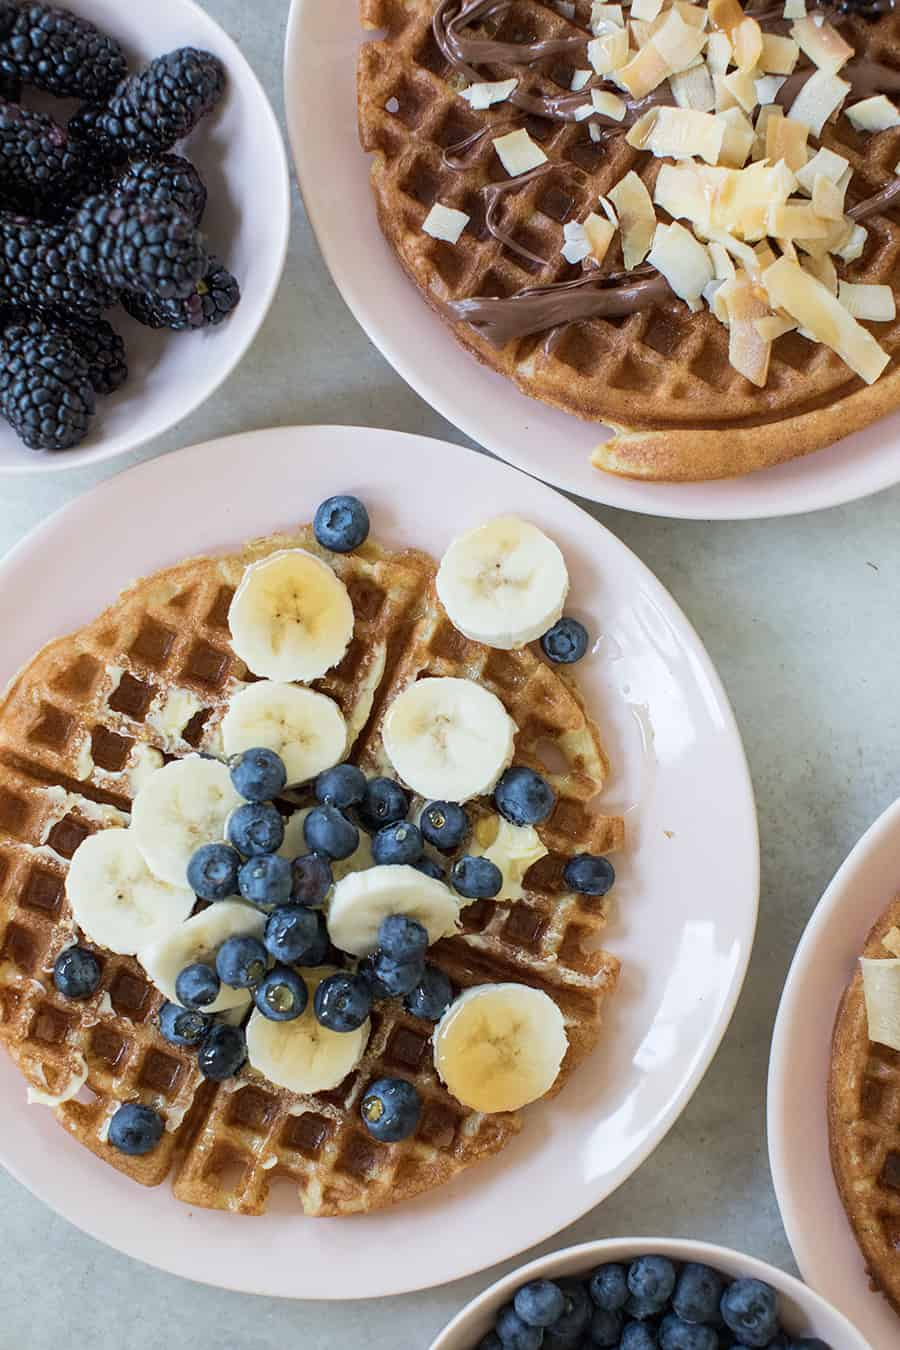 Homemade waffle with bananas, blueberries and syrup.